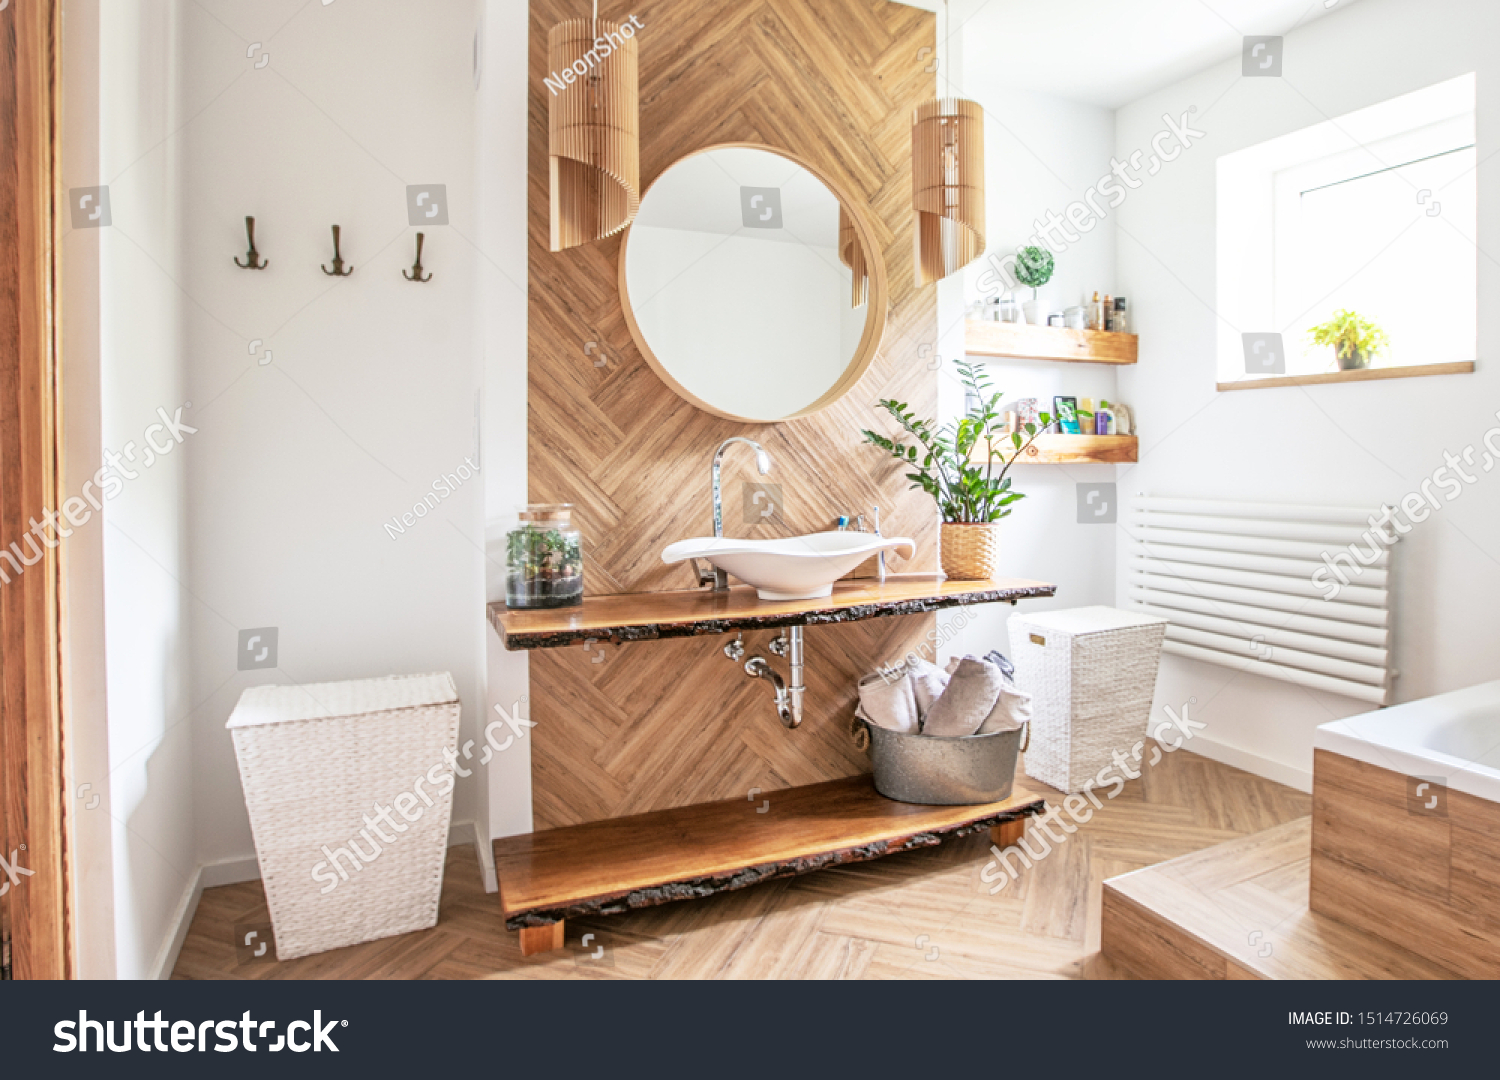 White sink on wood counter with a round mirror hanging above it. Bathroom interior. #1514726069